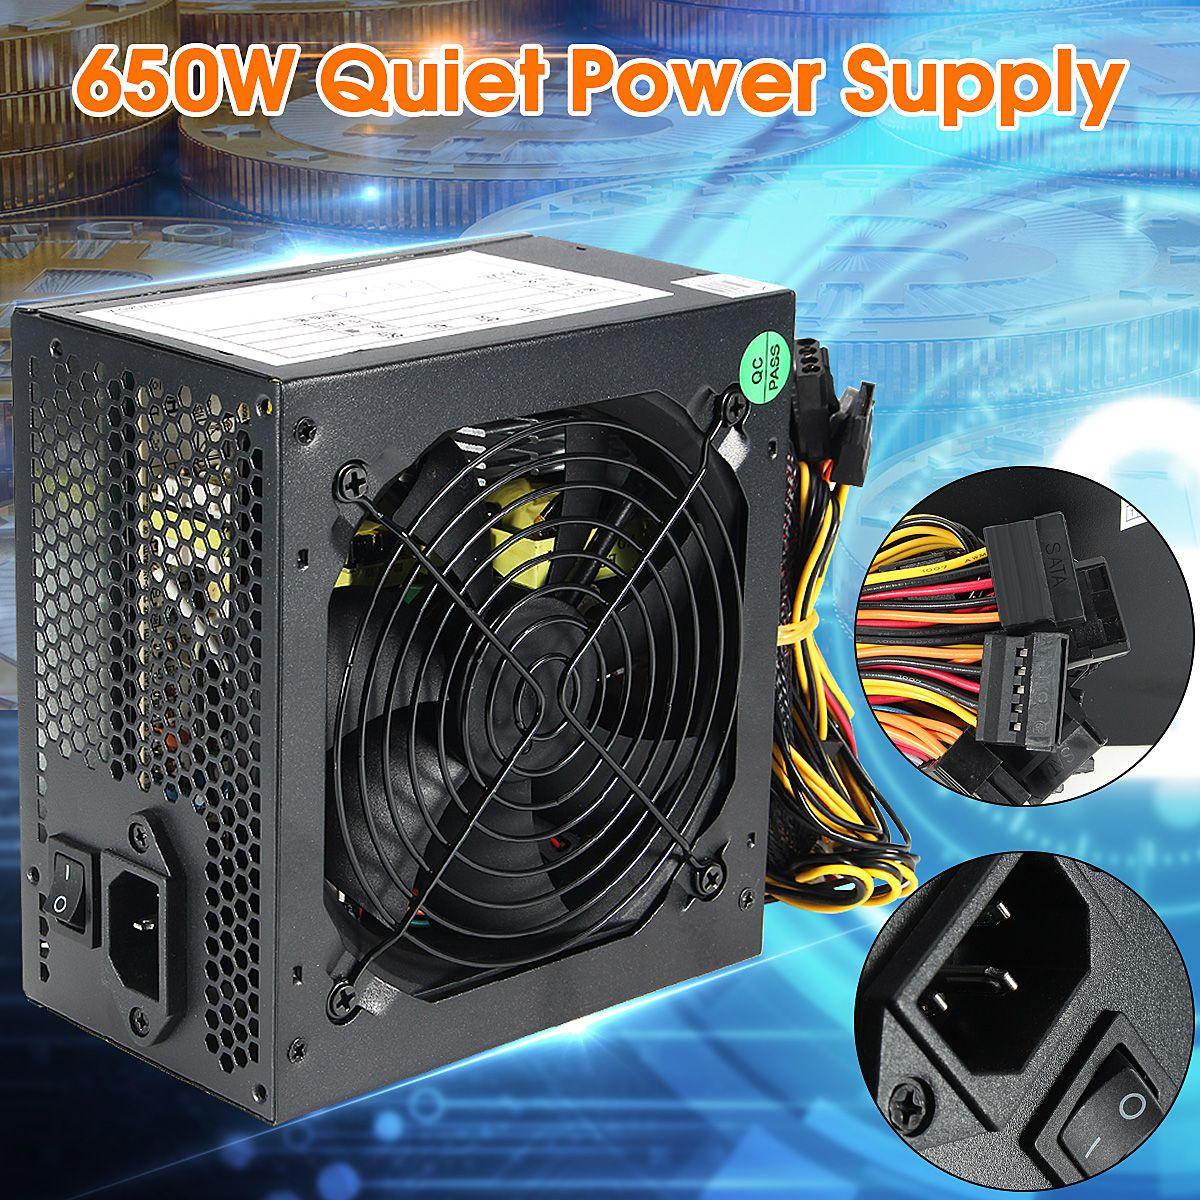 600W Quiet 120mm Fan ATX 12V 4/8-pin PC Power Supply Modular SLI Illuminated Fan for High-end ComputerConfiguration PC